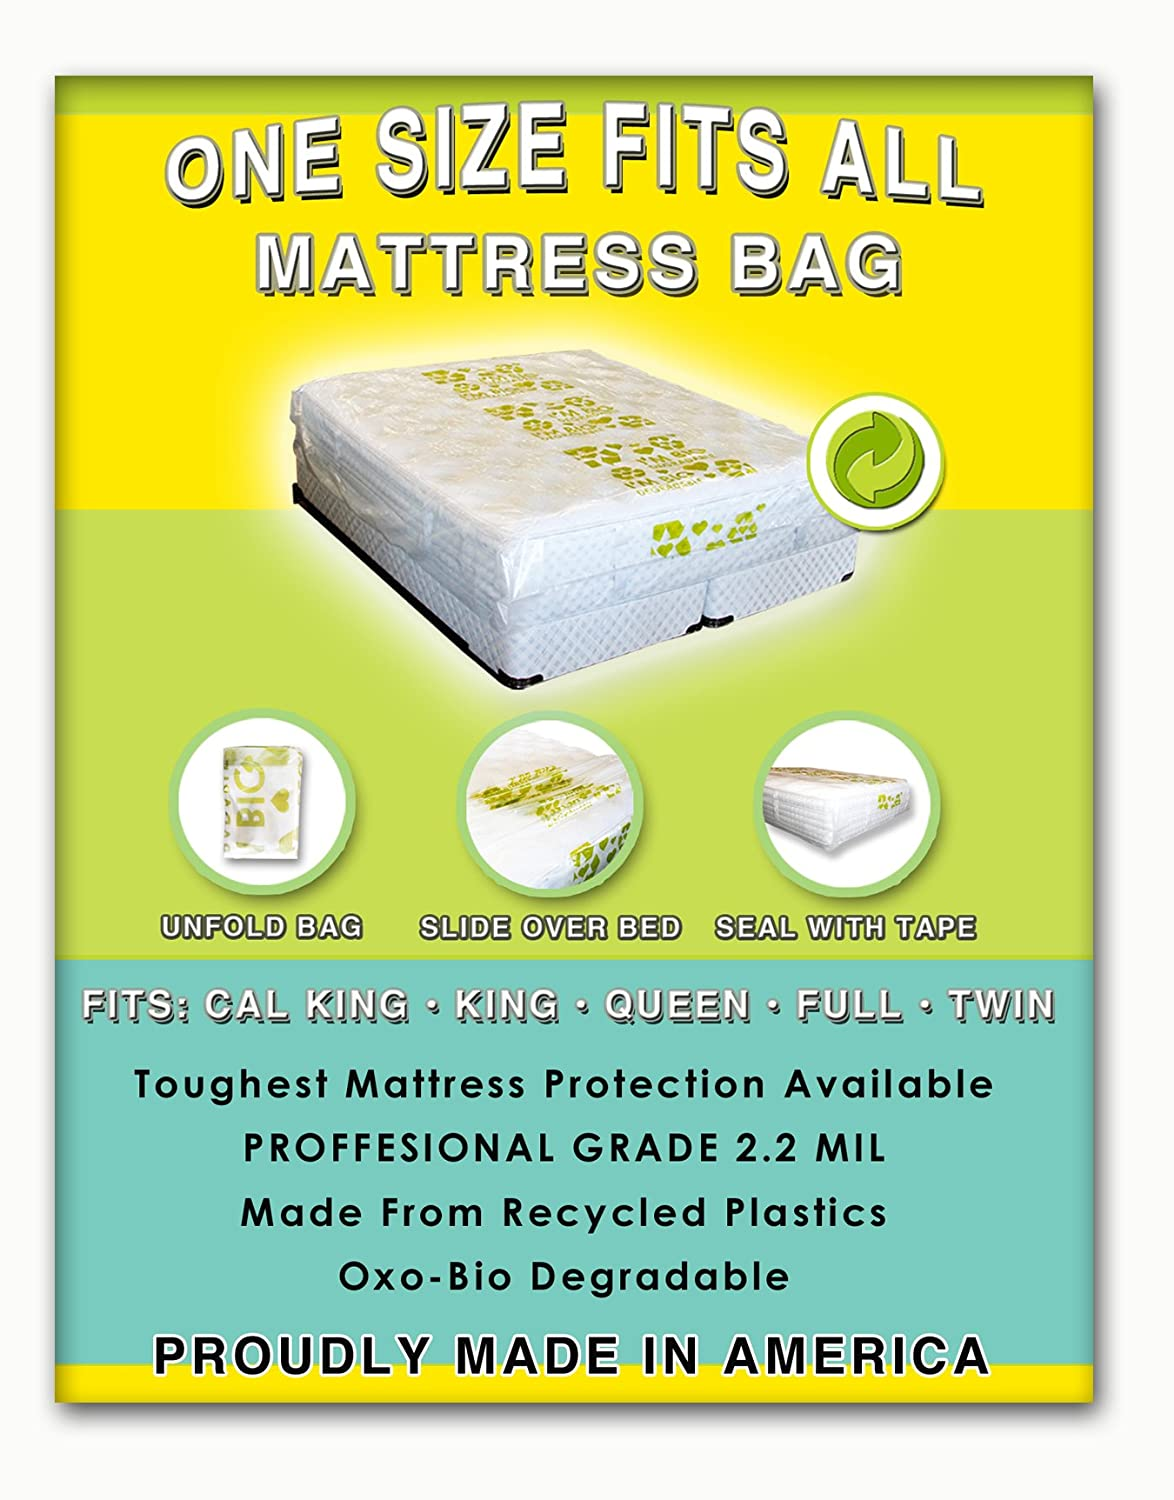 1 Size Fits All Mattresses. Compatible with All Pillow Tops and Box Springs. Ideal for Moving, Storage, Protection and Peace of Mind. Don't Let the Bed Bite. Protect Your Investment with Our American Made, World Famous Eco Fr